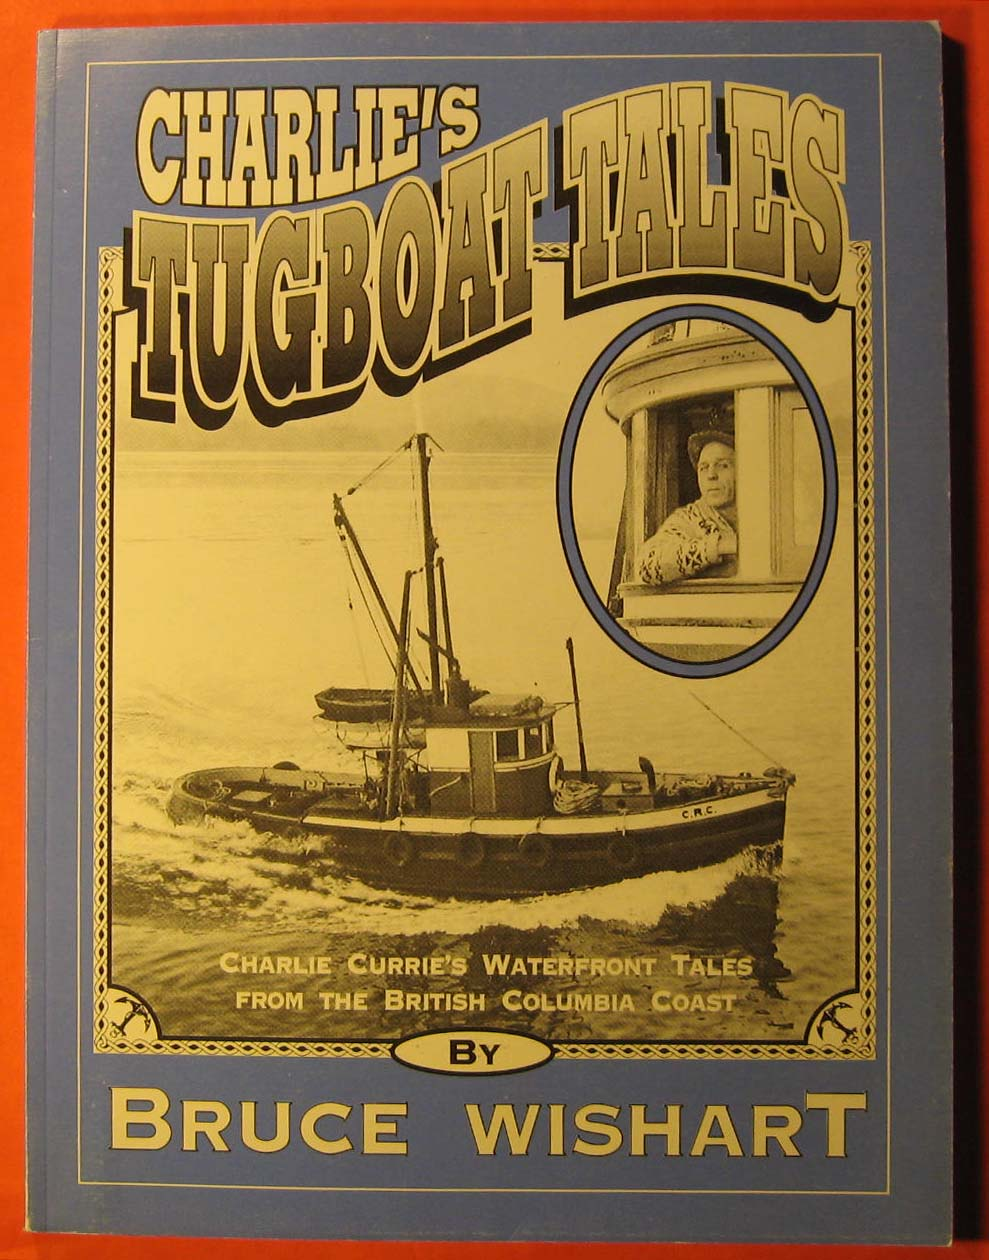 Image for Charlie's Tugboat Tales:  Charlie Currie's Waterfront Tales from the British Columbia Coast